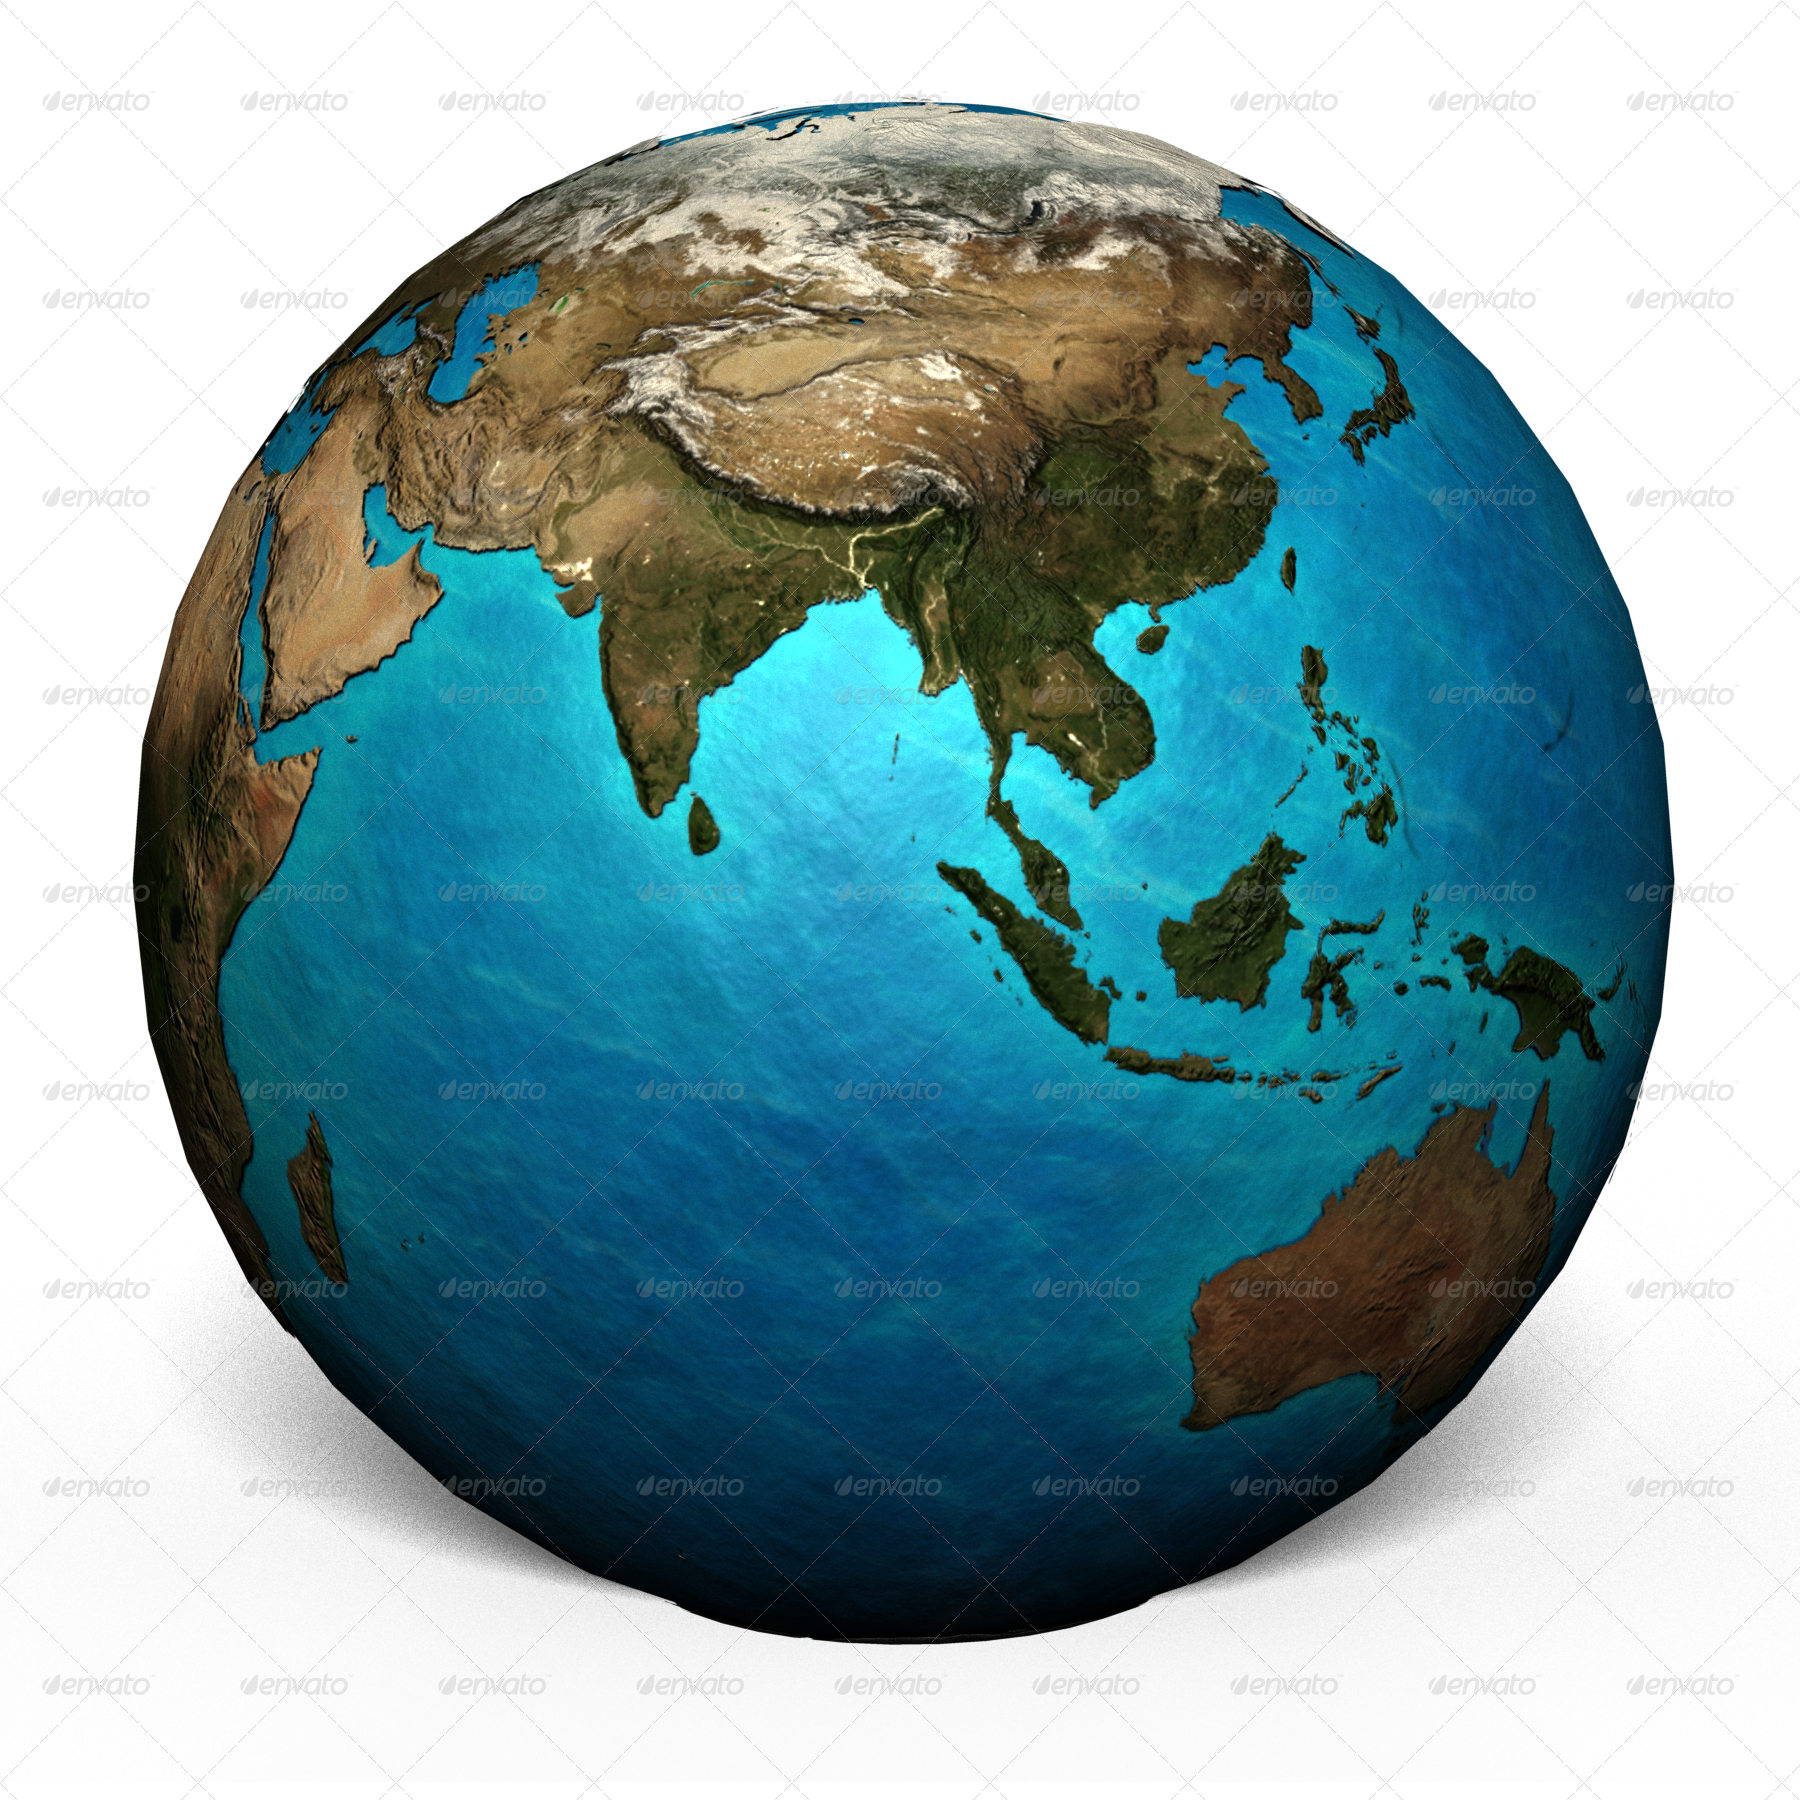 3d globe png. Earth image background arts